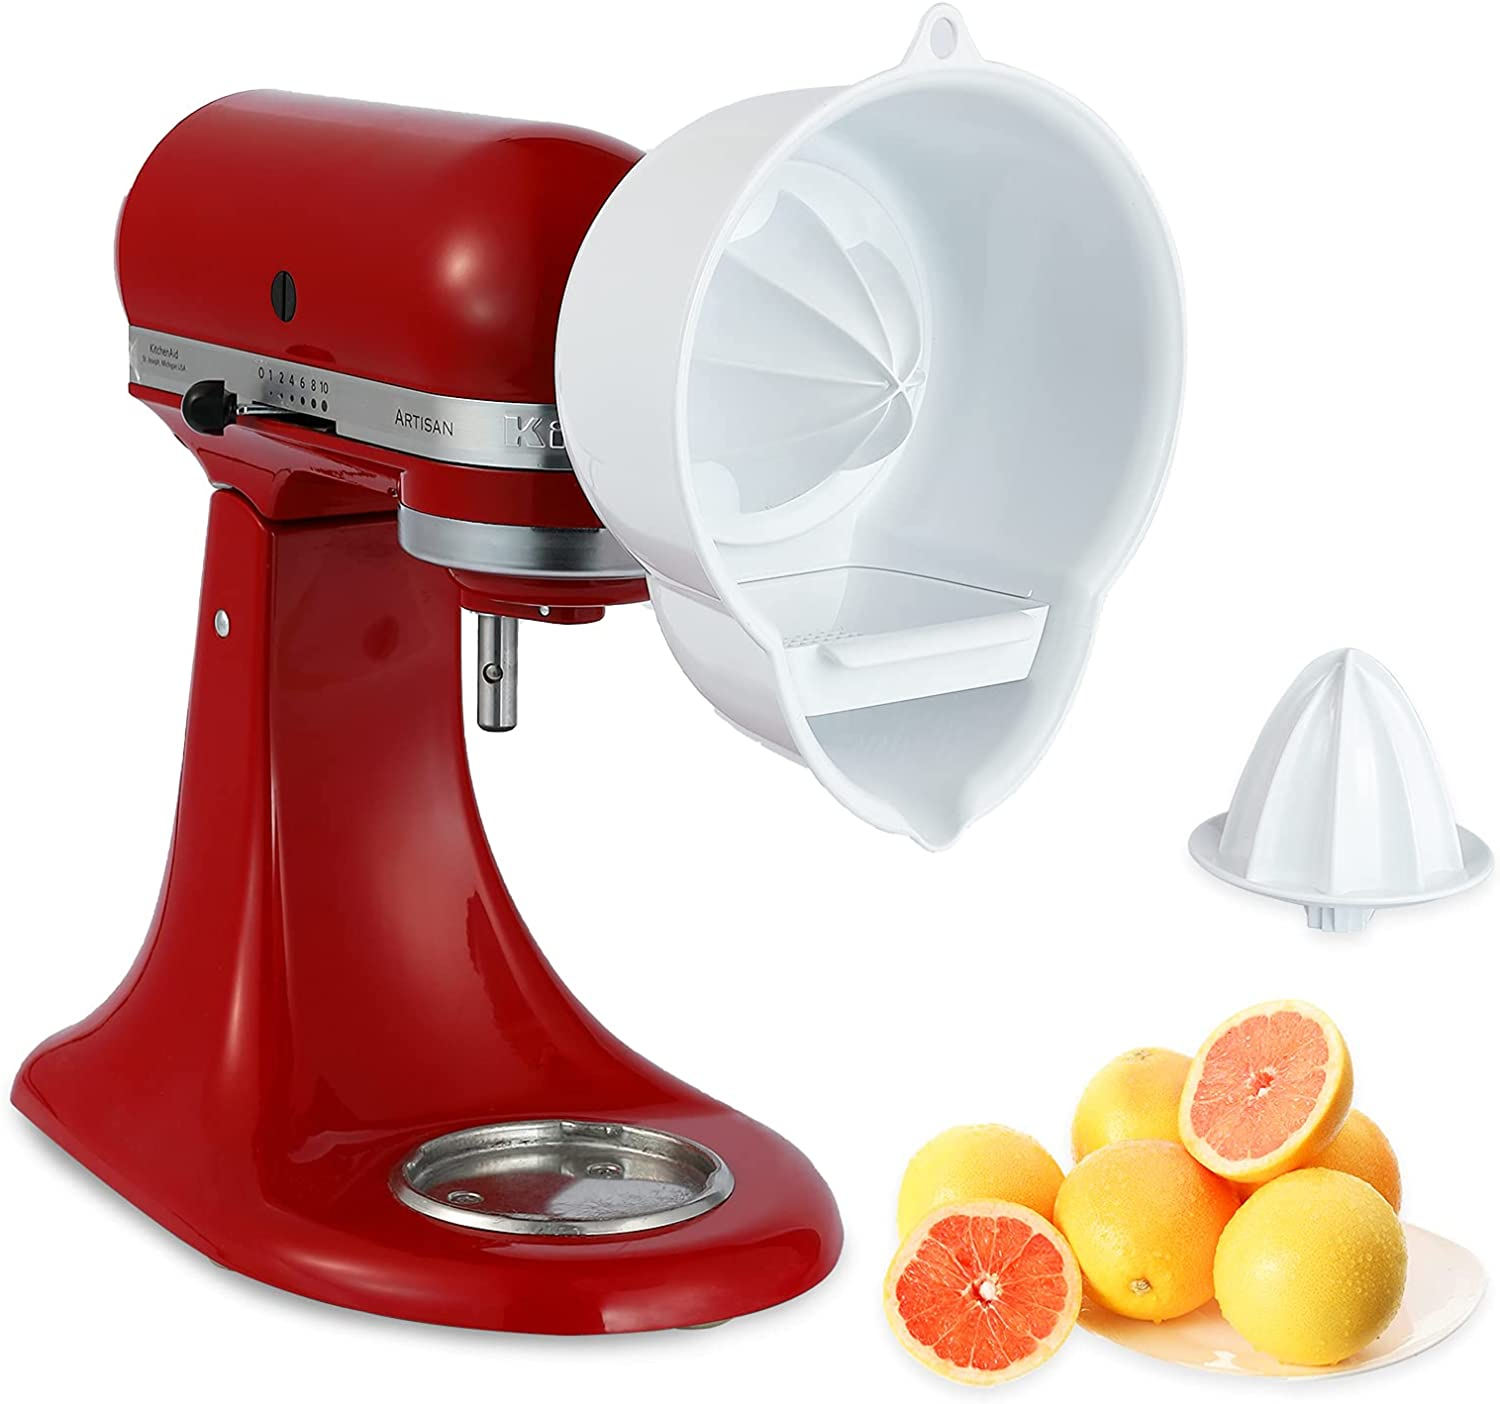 Juicer Attachment for Kitchenaid Stand Mixer with 2 Size Reamer,Juicer for Kitchenaid Stand Mixer Citrus Juicer Attachment Accessories by InnoMoon